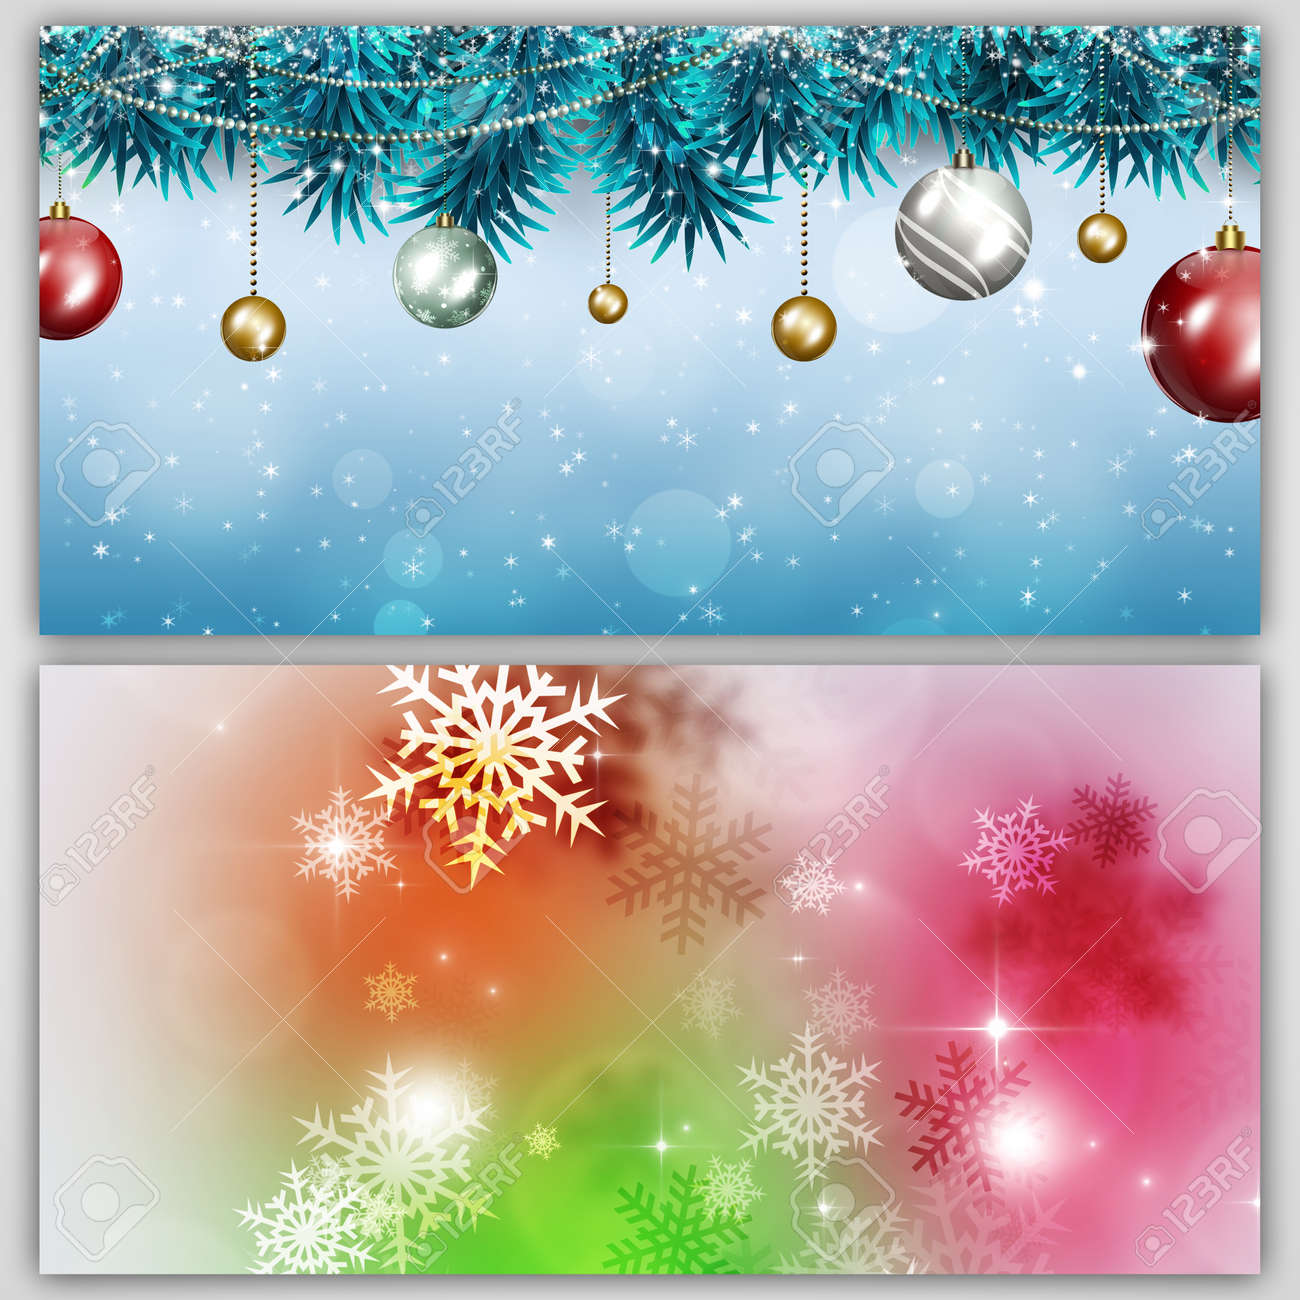 Winter Holiday Banners Html5 Banners